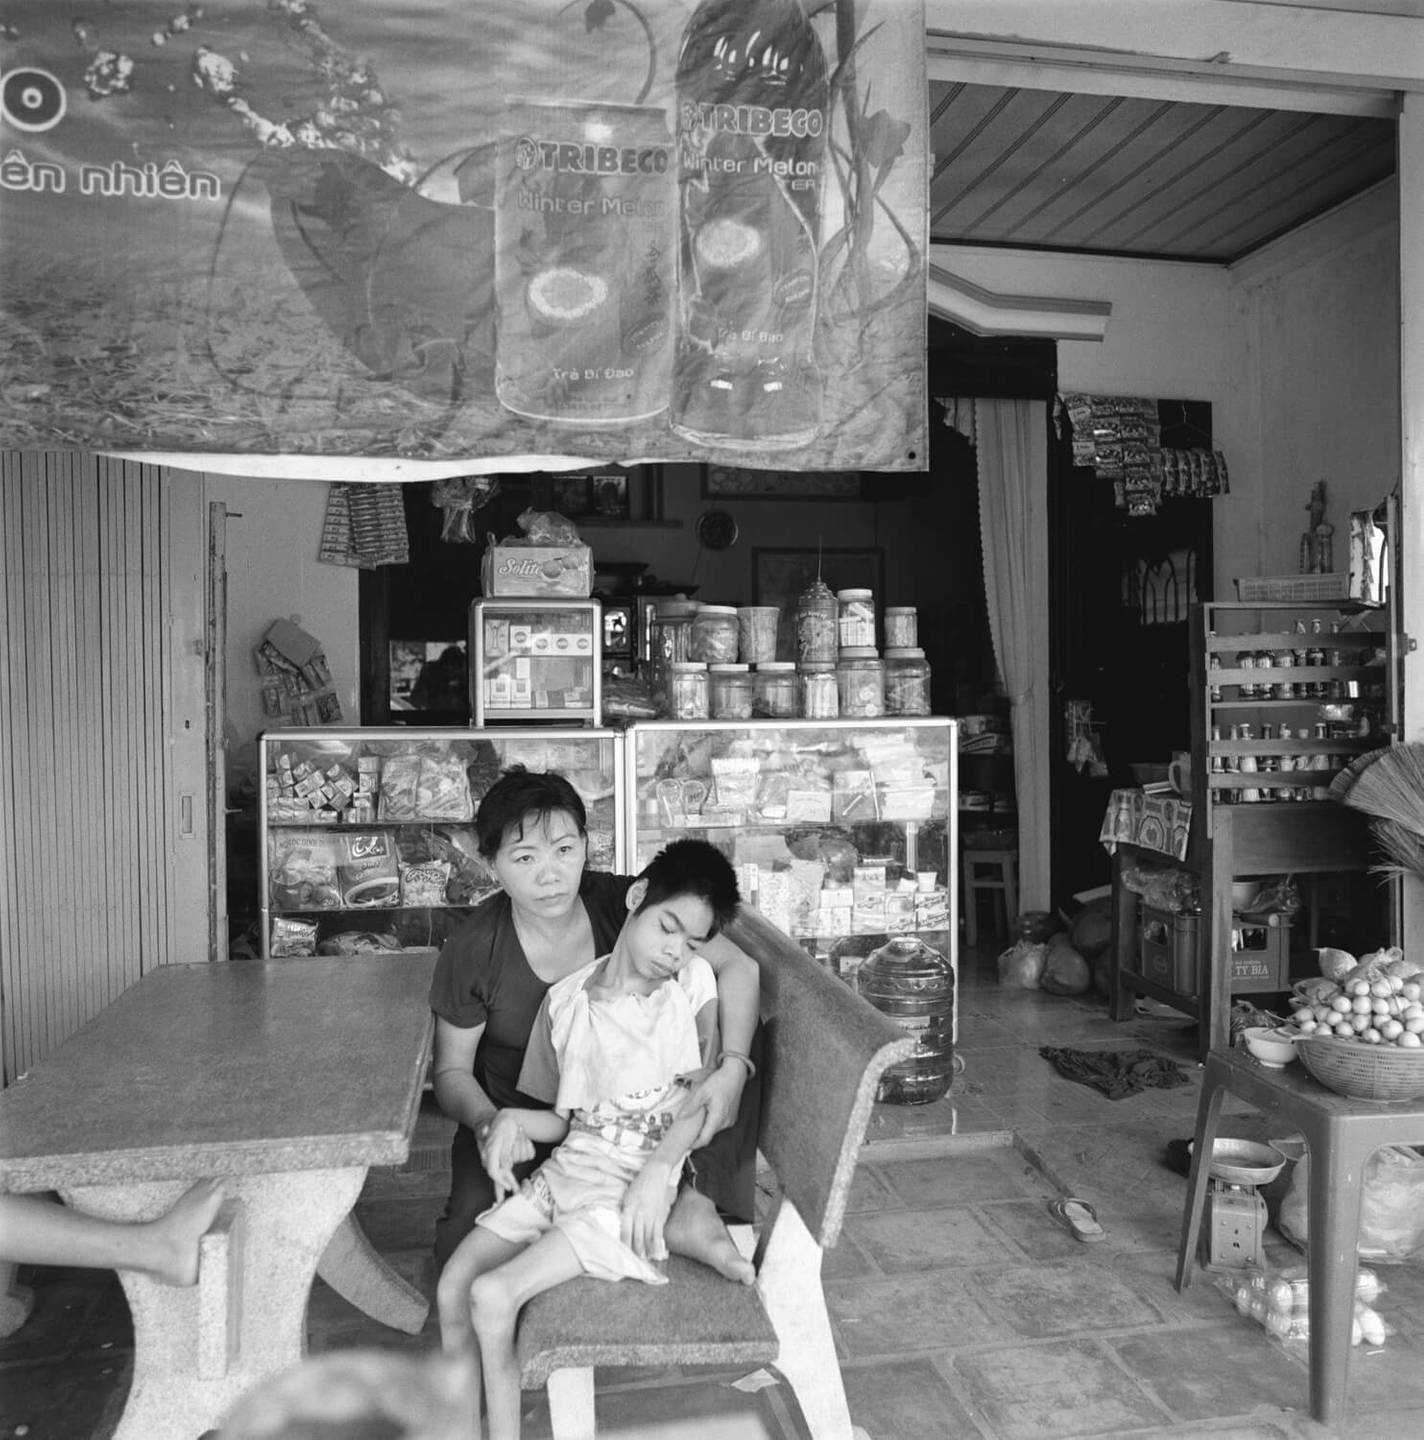 Asian mother and her deformed child, sitting in a booth at a shop or restaurant.